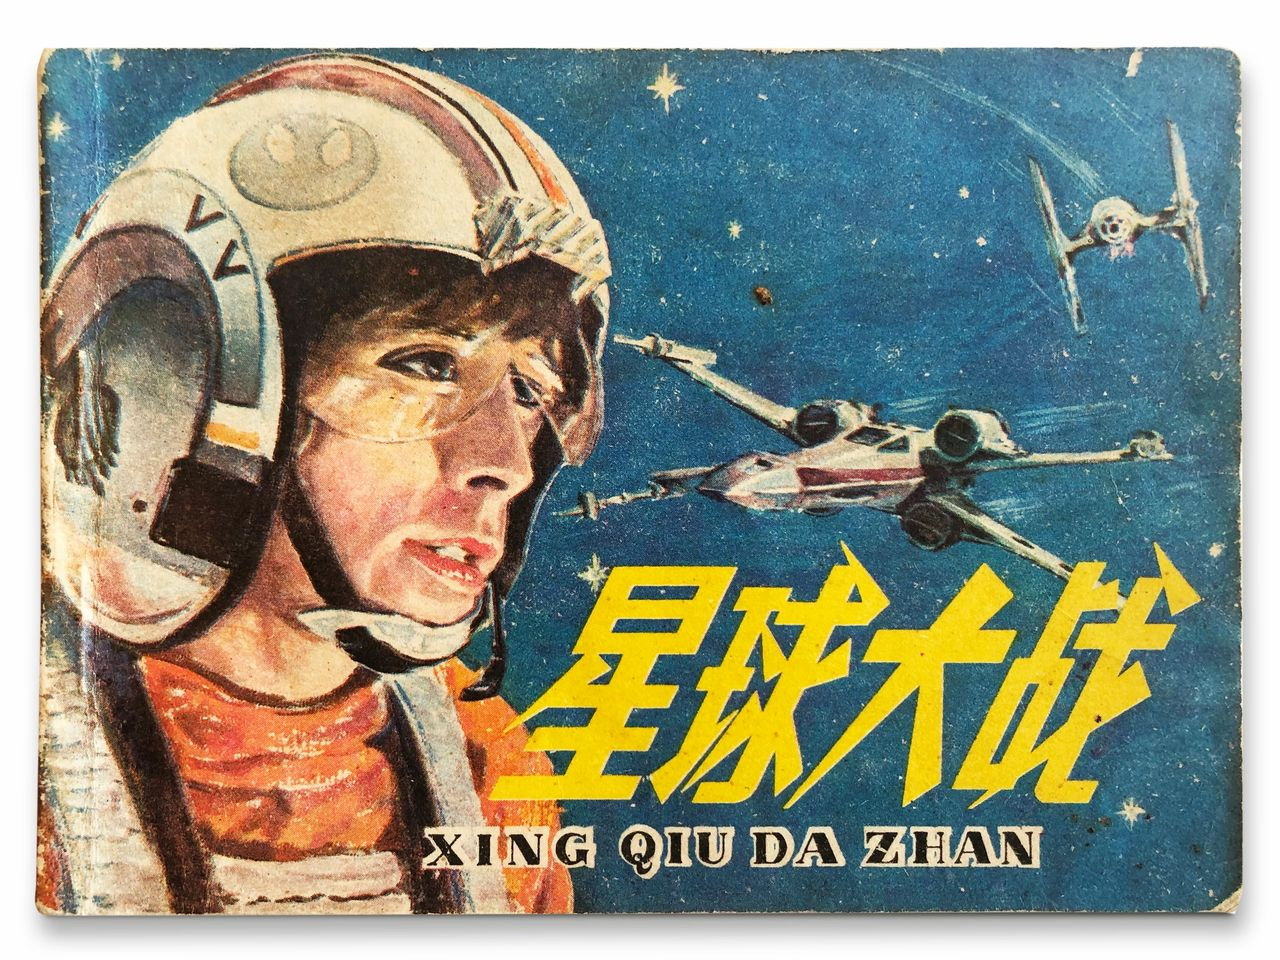 Xing Qiu Da Zhan II (Star Wars: A New Hope - Chinese Comic)